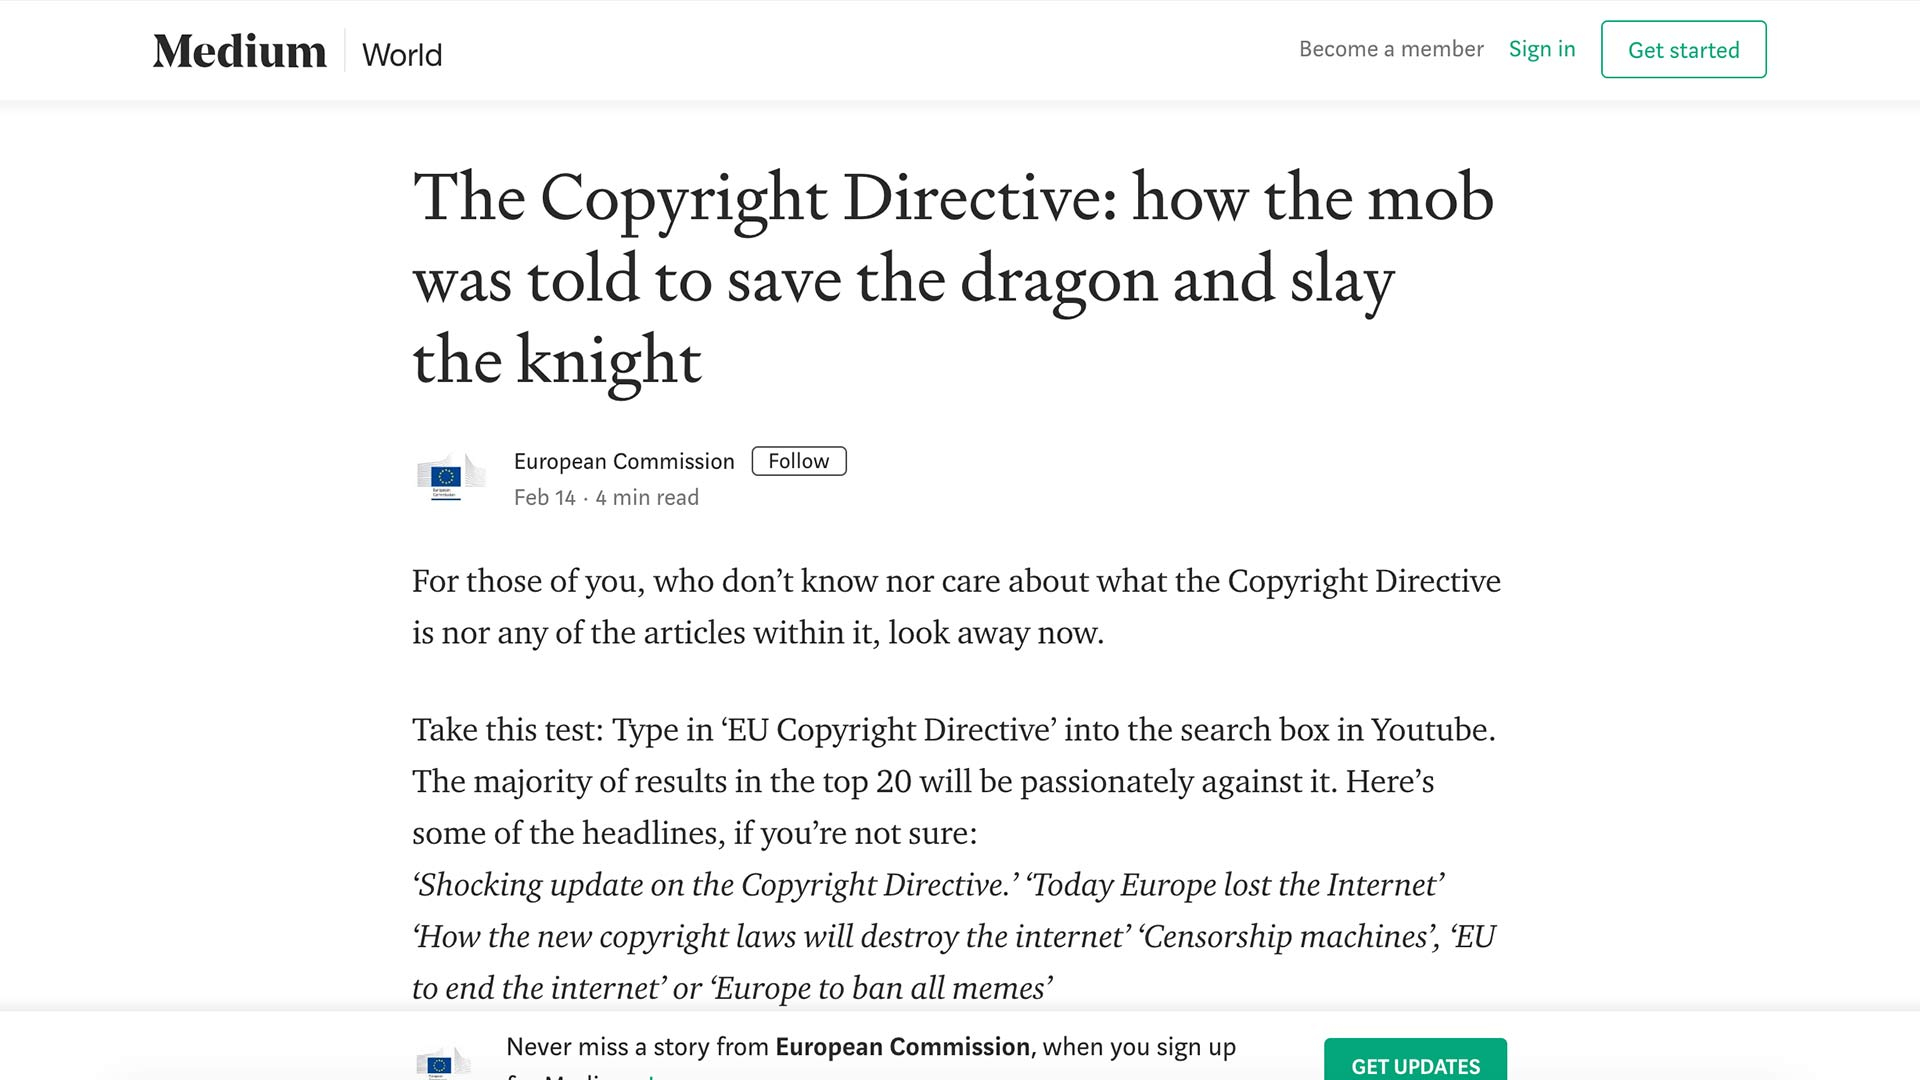 Fairness Rocks News The Copyright Directive: how the mob was told to save the dragon and slay the knight